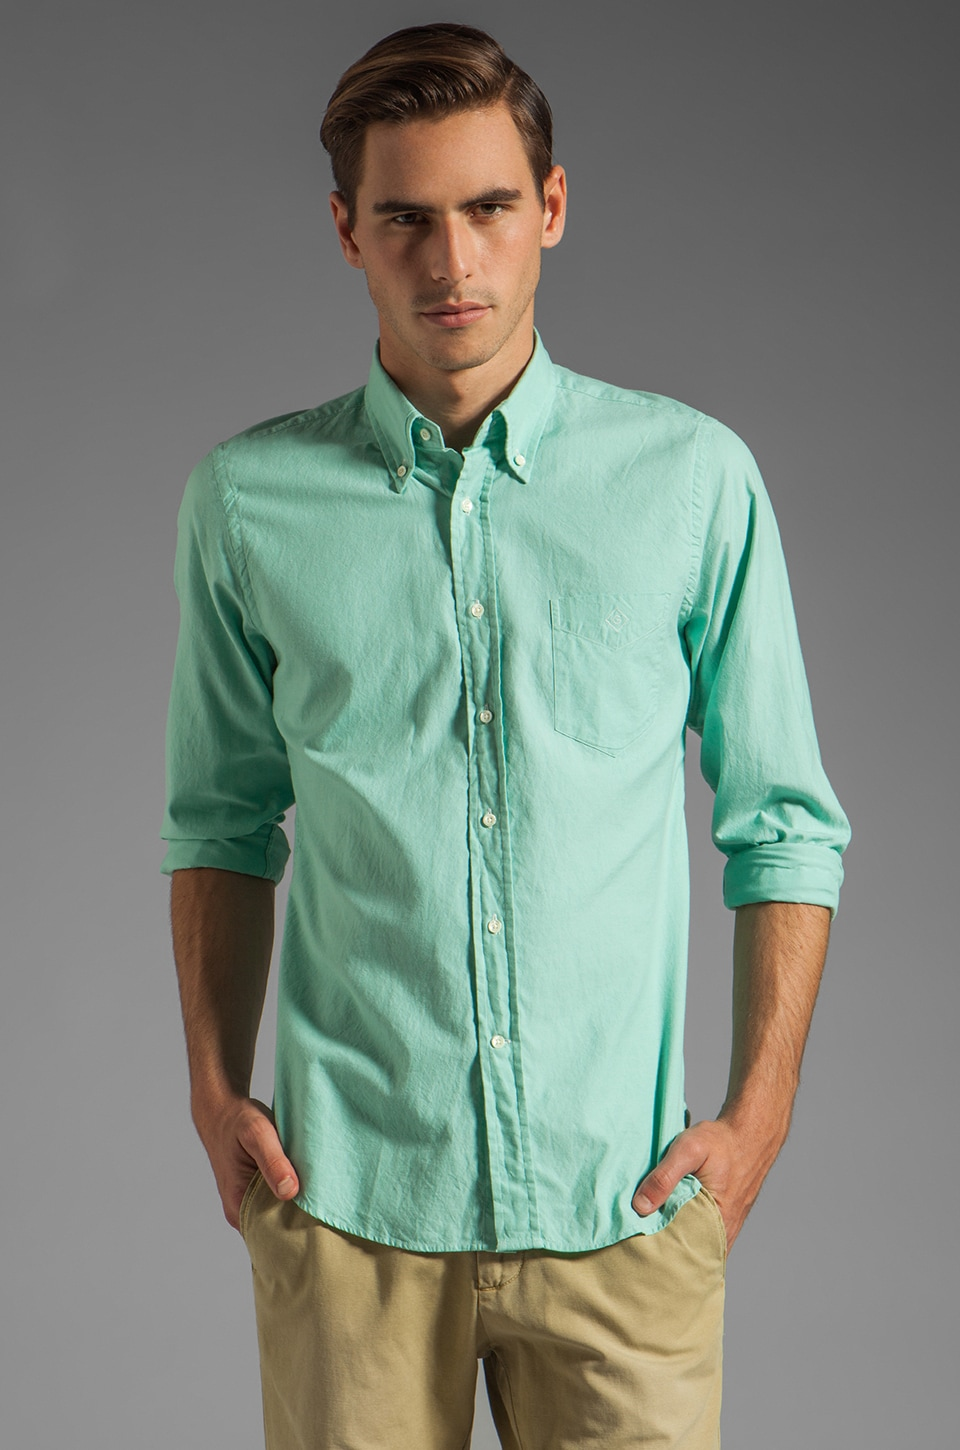 GANT Rugger Dreamy Oxford Solid HOBD Shirt in Green